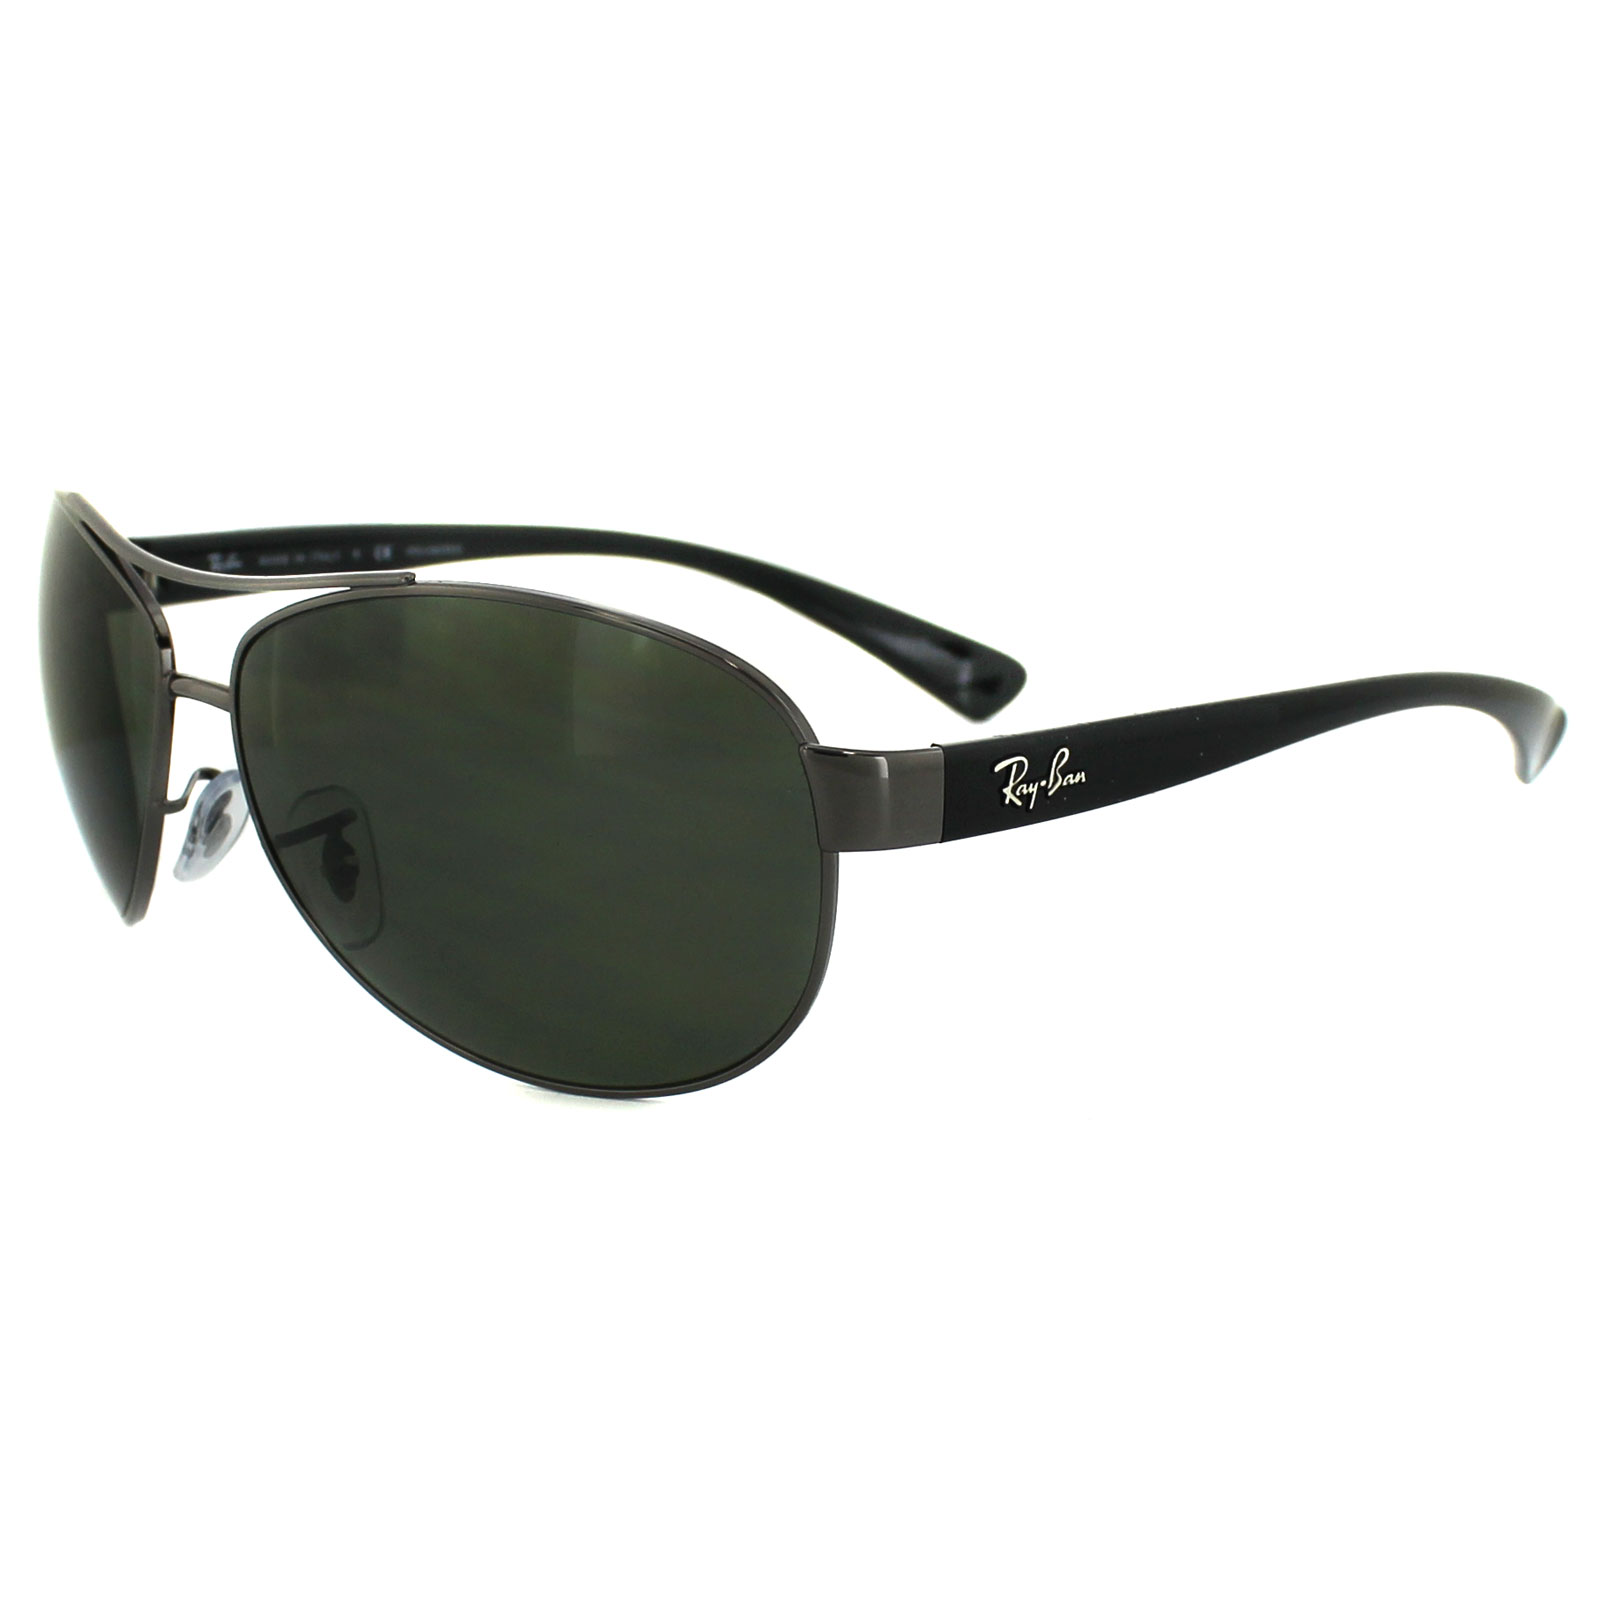 ee7cf50455 Sentinel Ray-Ban Sunglasses 3386 Gunmetal Polarized Green 004 9A Small 63mm